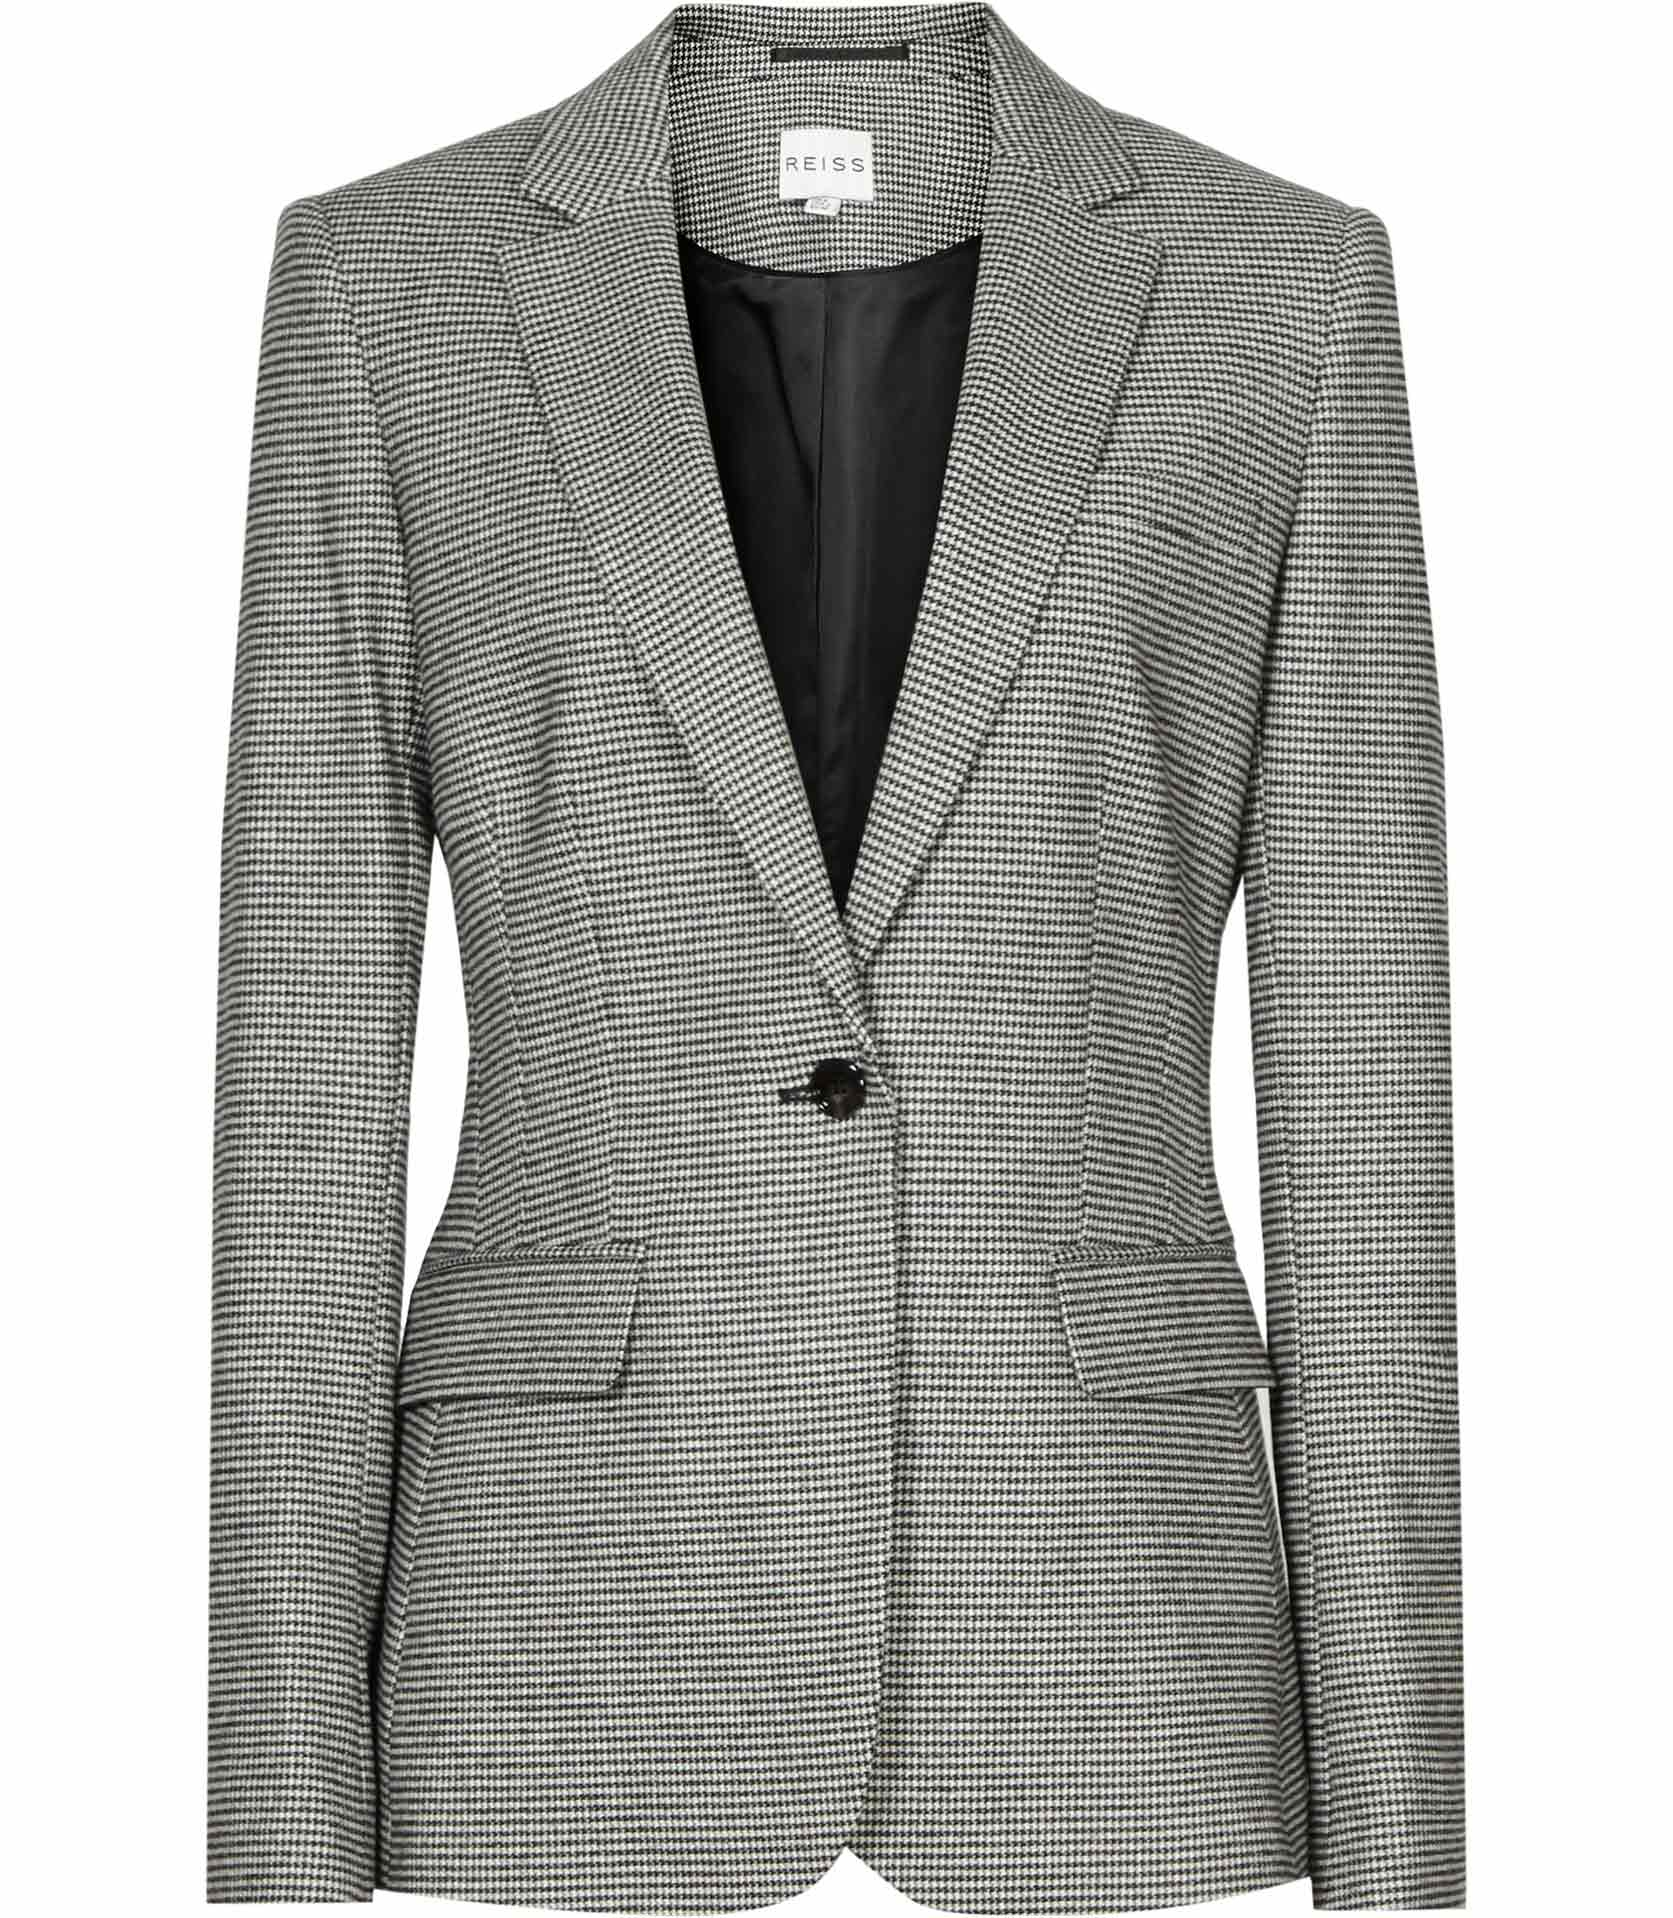 Love this houndstooth jacket! It is so pretty and fits true to size. I especially love the belt to create a nice fitted look. This is a classic and I get lots of compliments when I wear it.